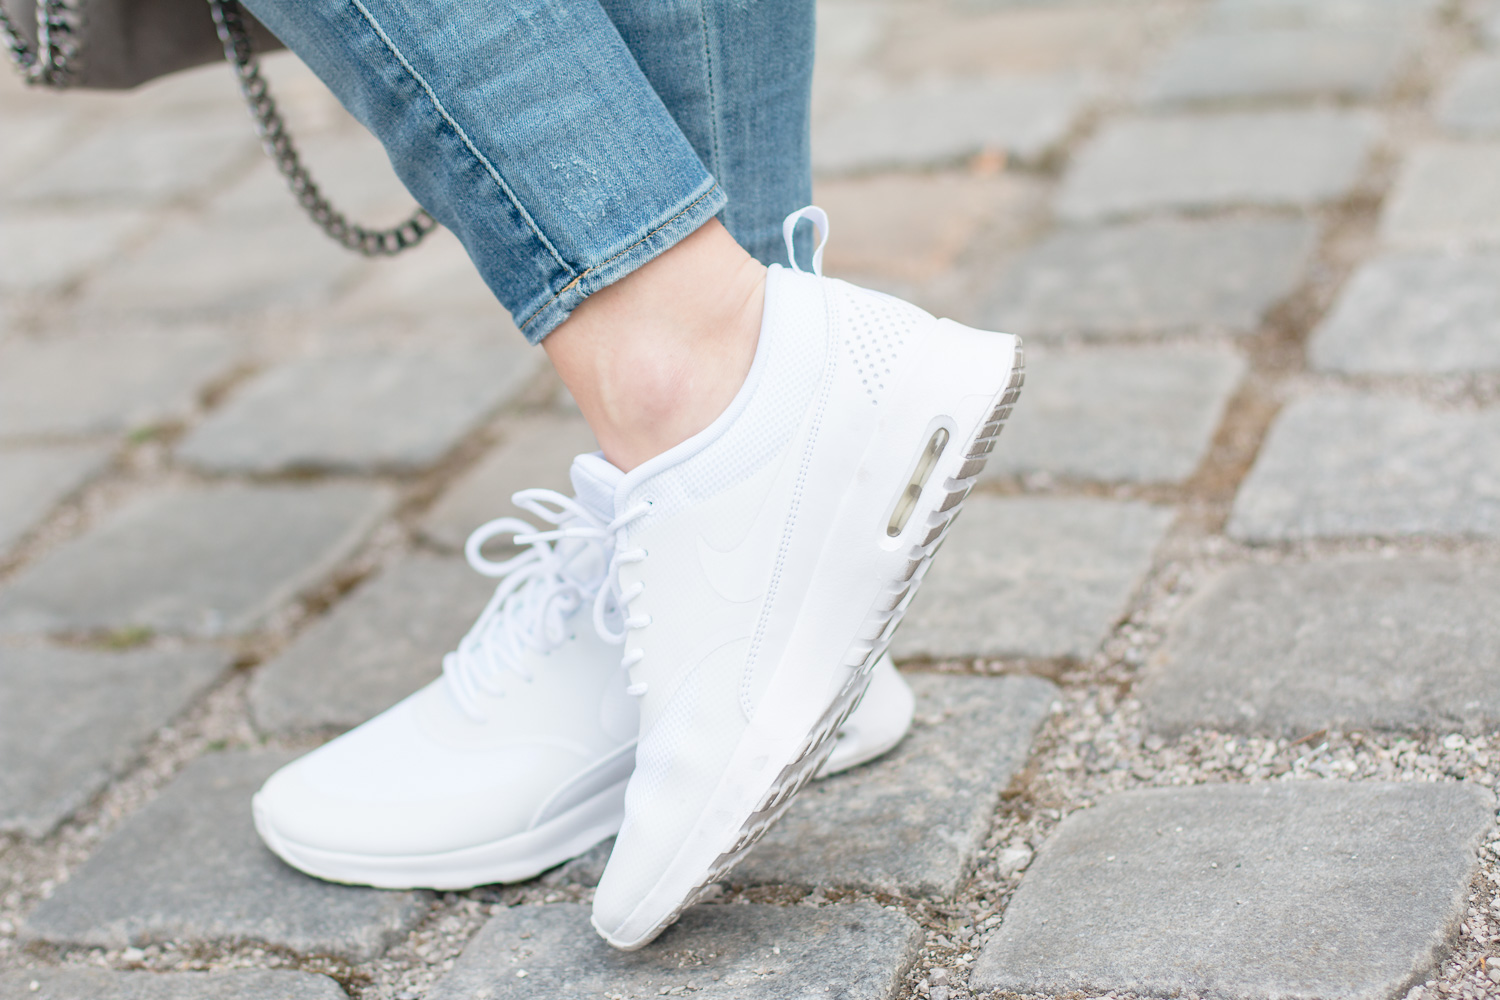 Nike-Airmax-Thea-All-White-6